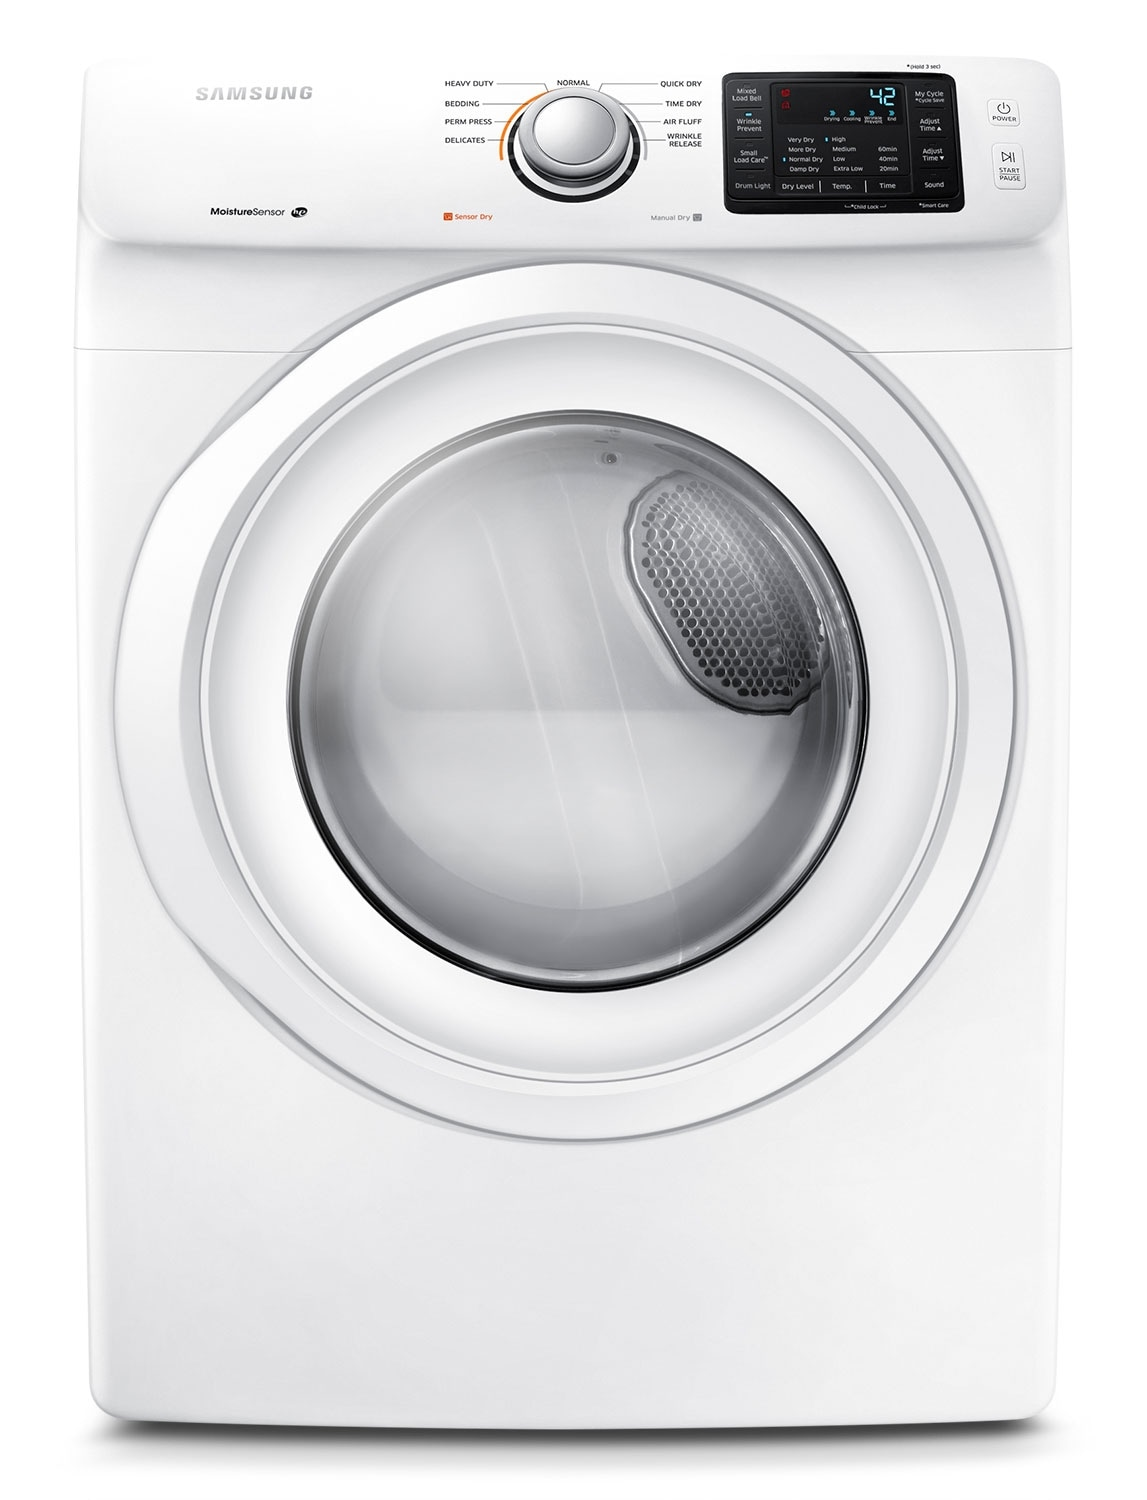 Washers and Dryers - Samsung 7.5 Cu. Ft. Electric Dryer - White